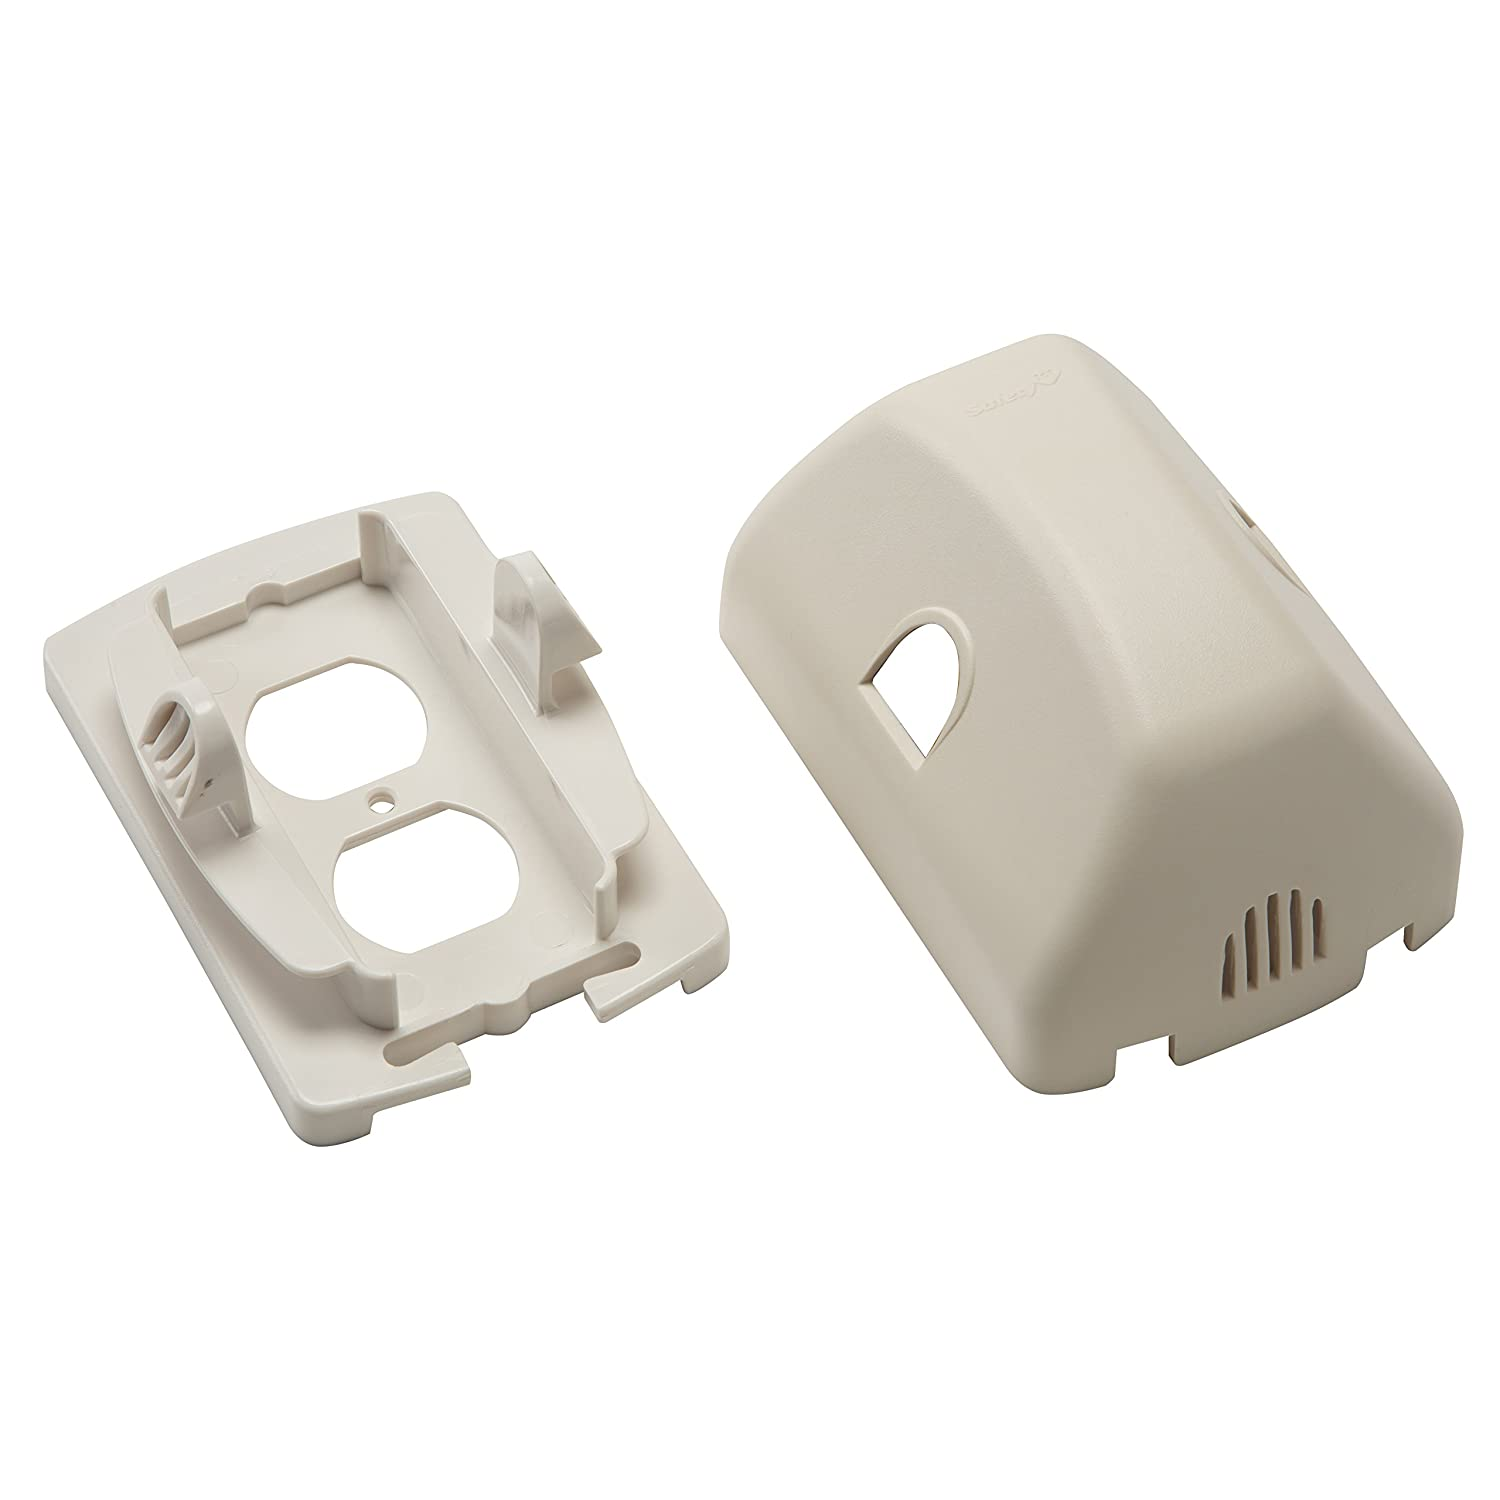 Safety 1st Plug Protectors 36 Count with Safety 1st Outlet Cover with Cord Shortener for Baby Proofing